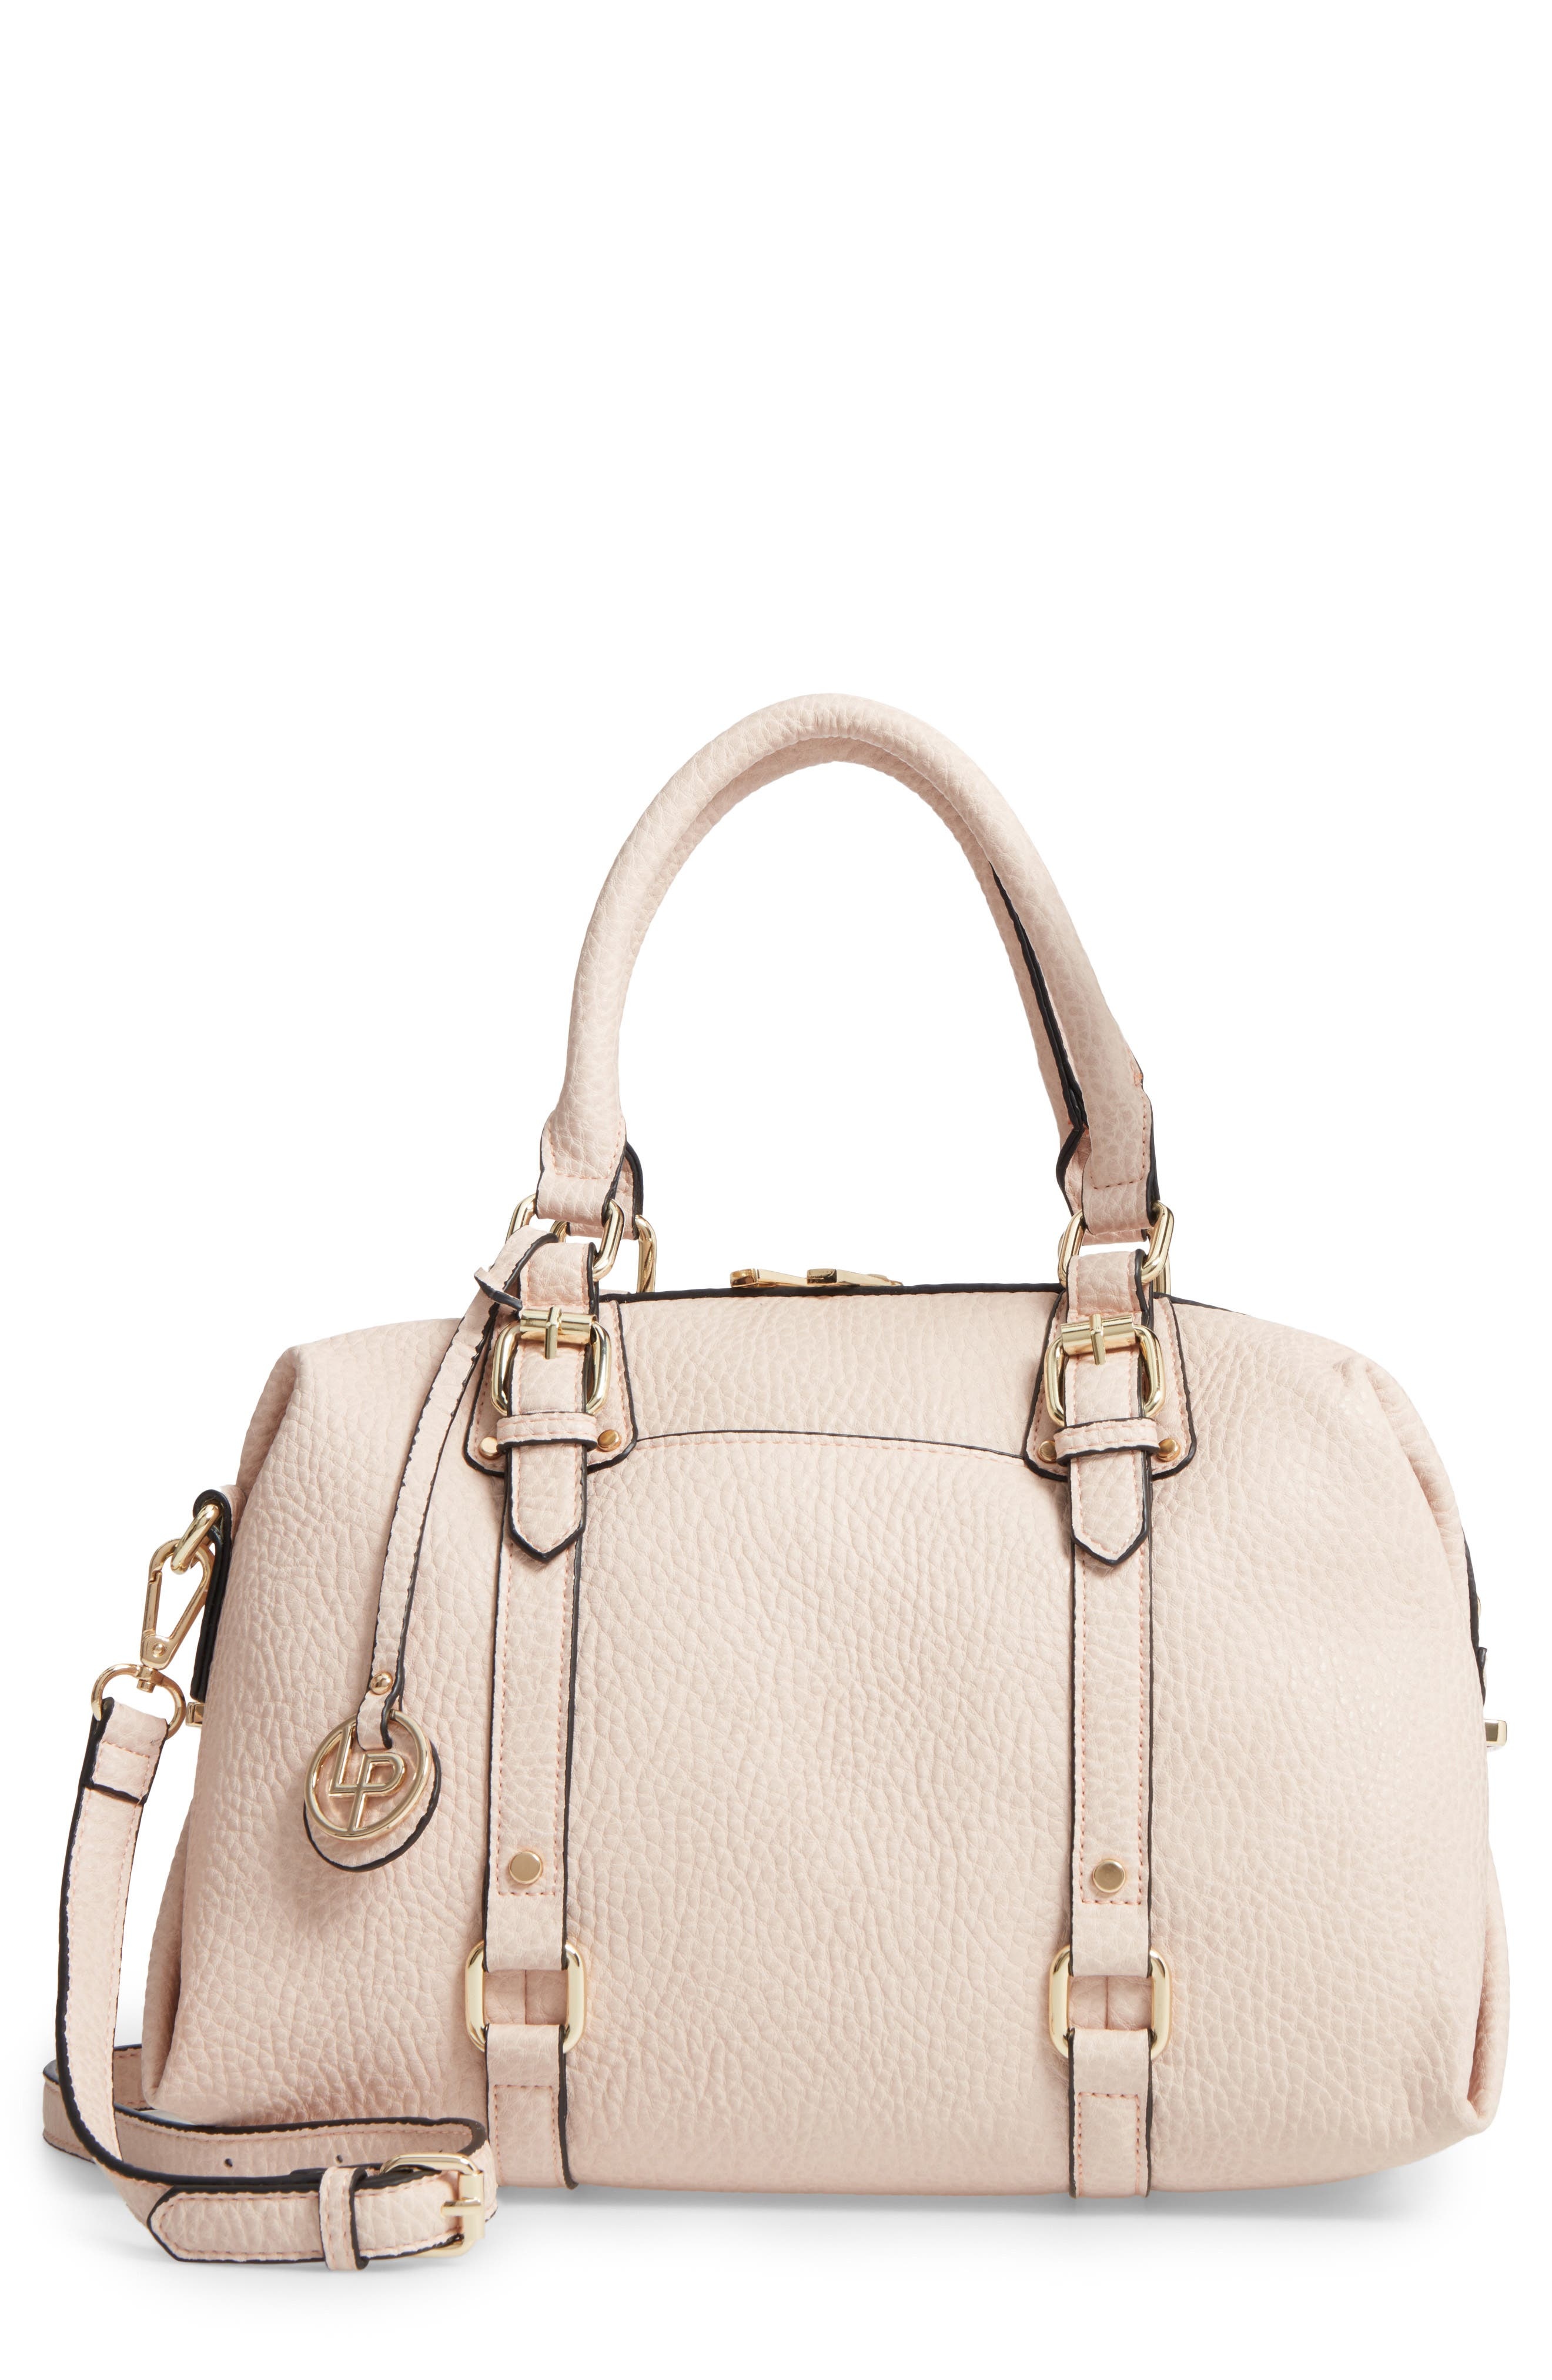 Linea Pelle Faux Leather Satchel